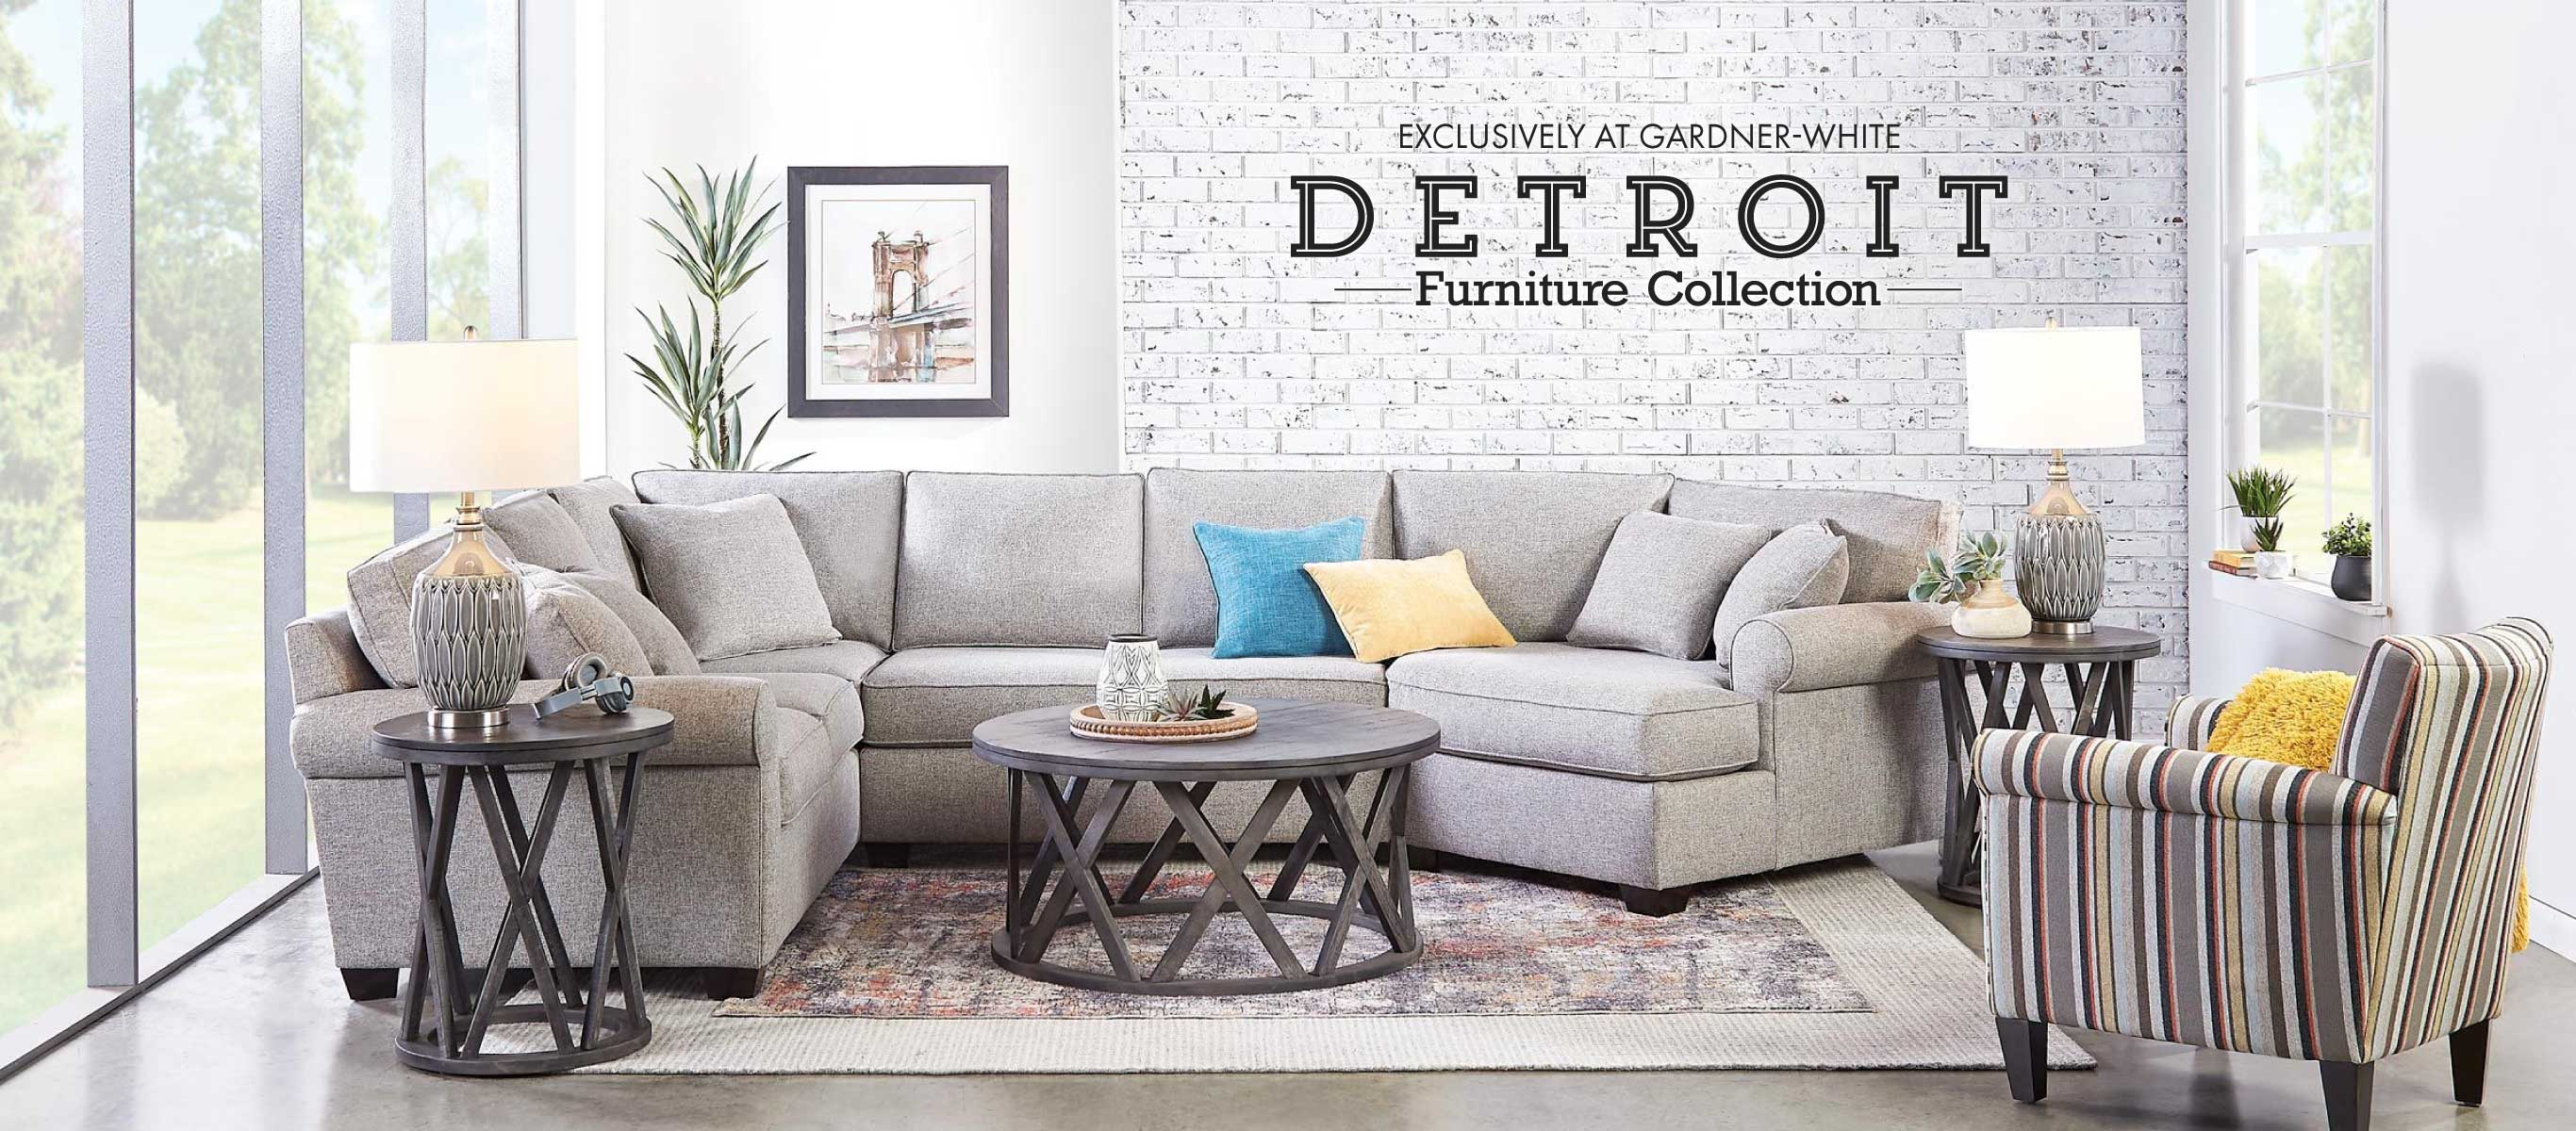 Exclusively at Gardner-White: Detroit Furniture Collection